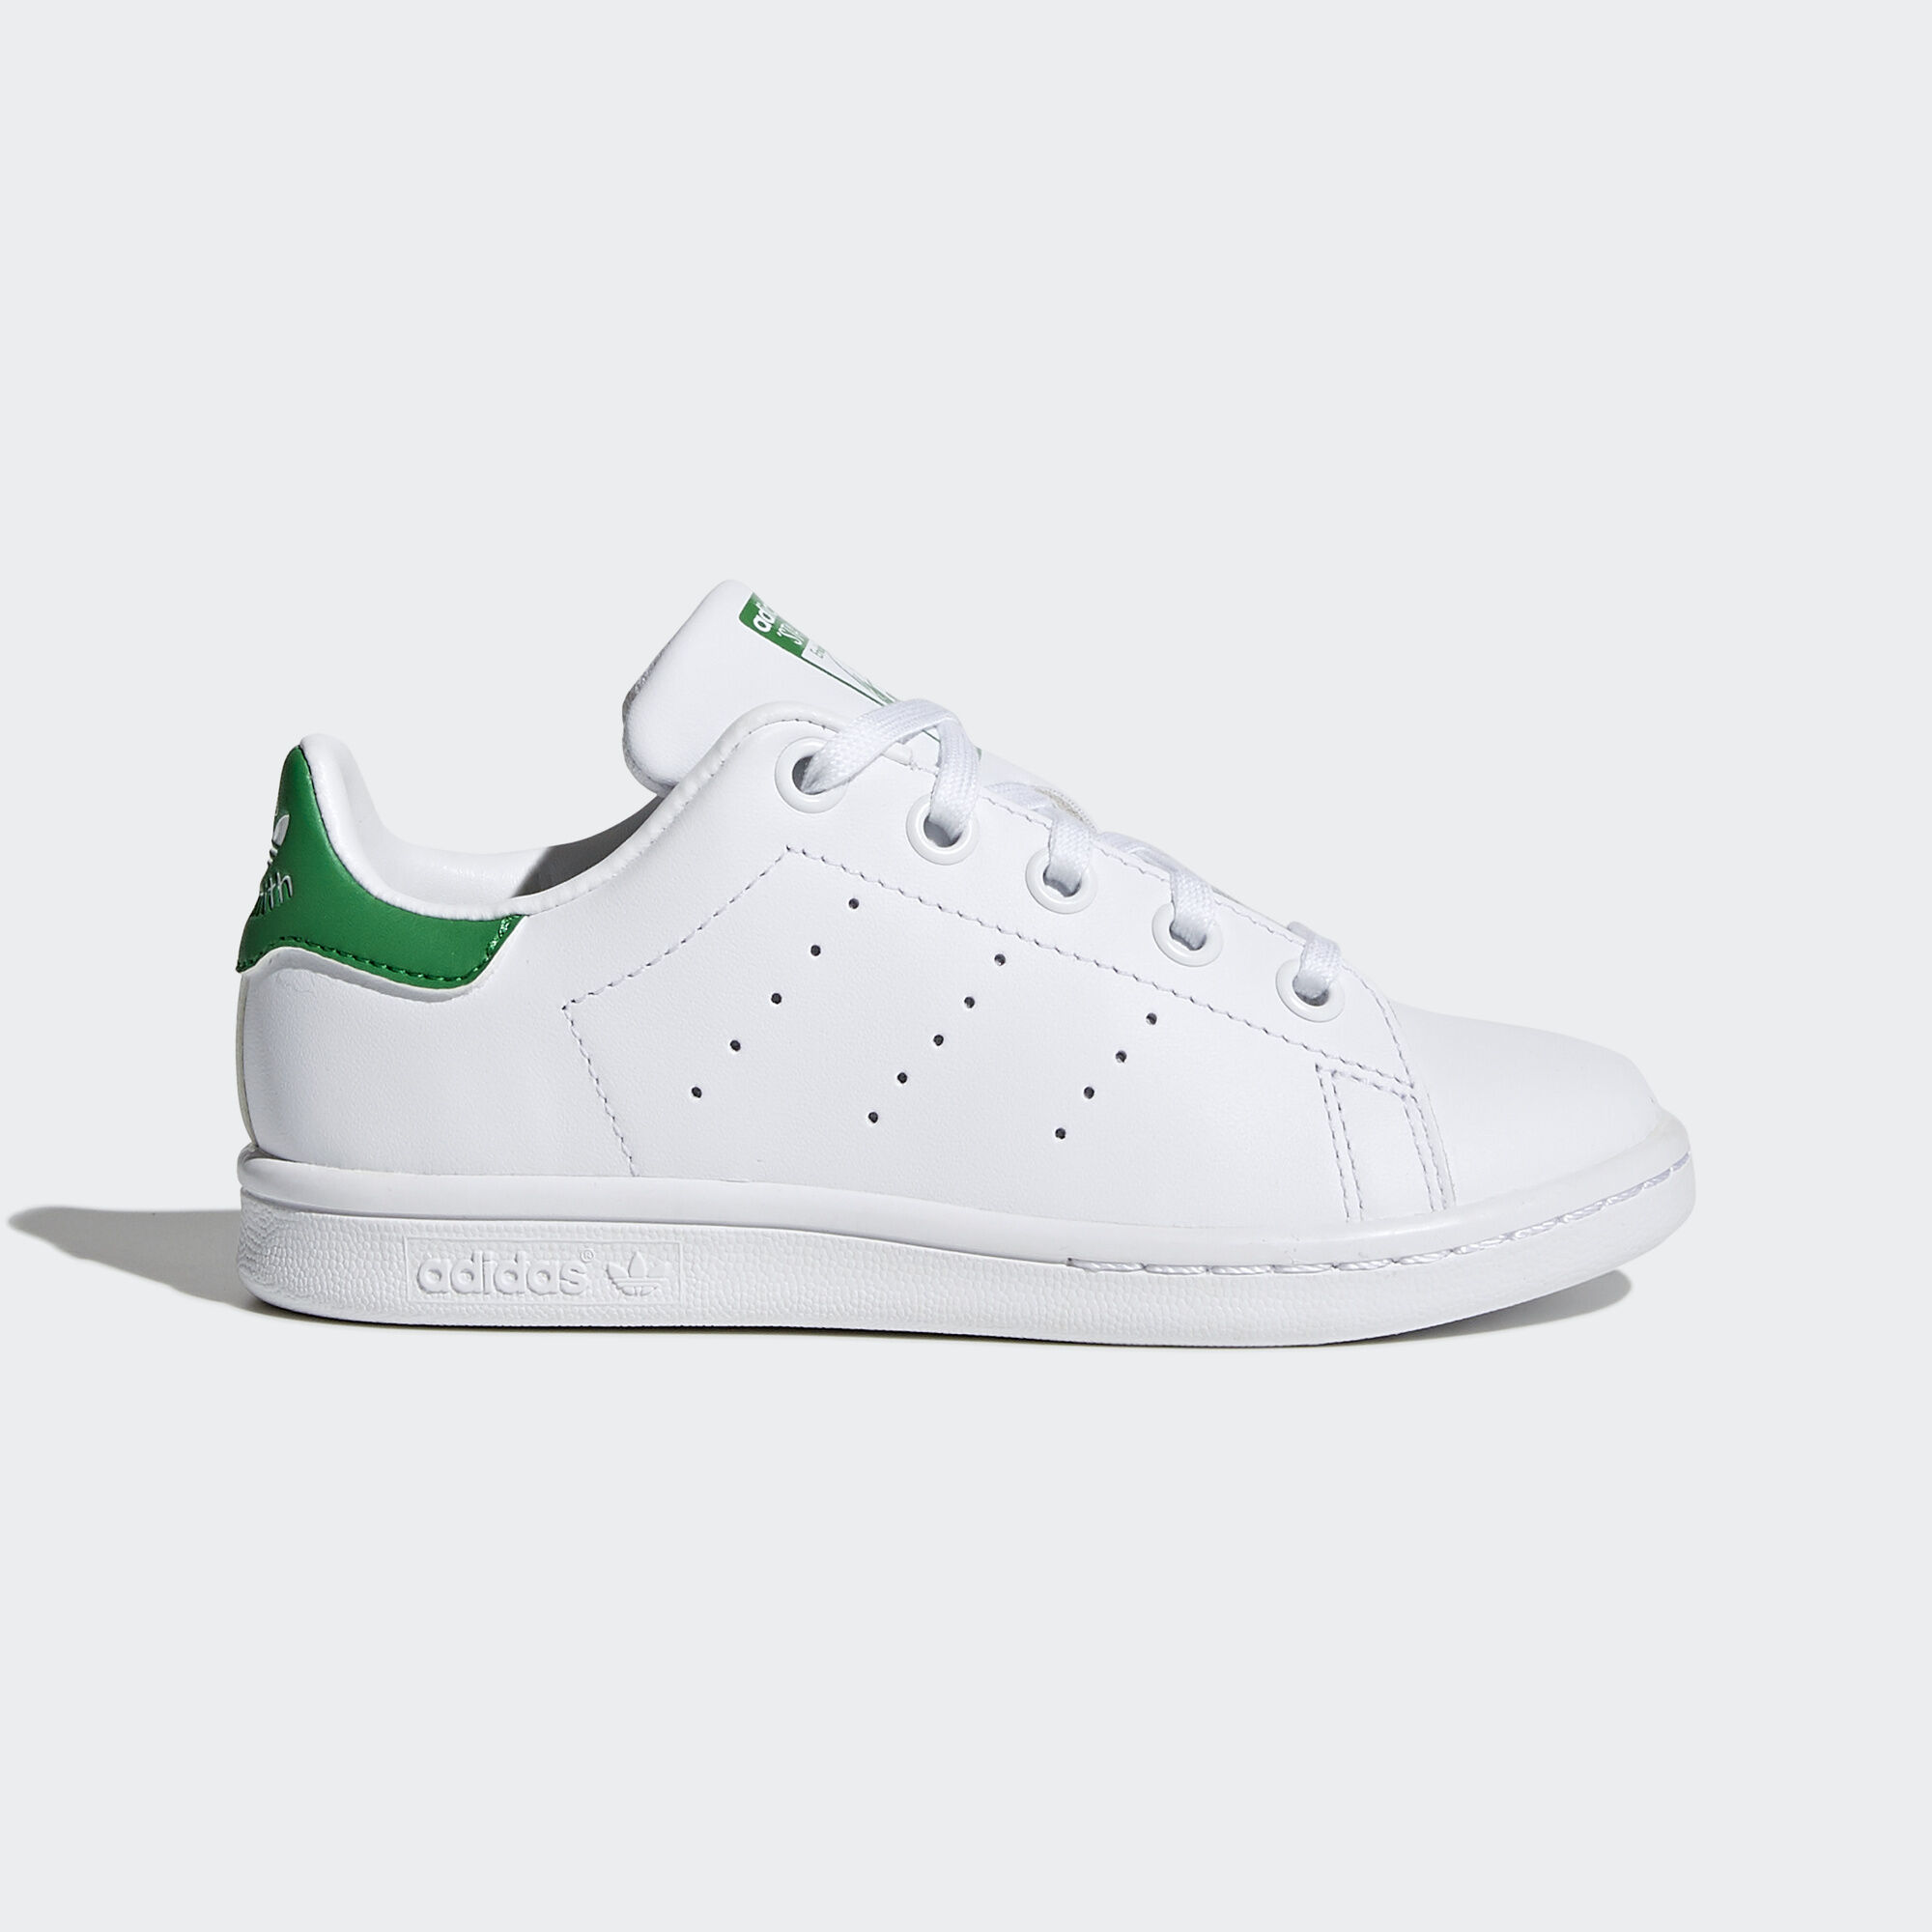 where can i buy adidas stan smith shoes